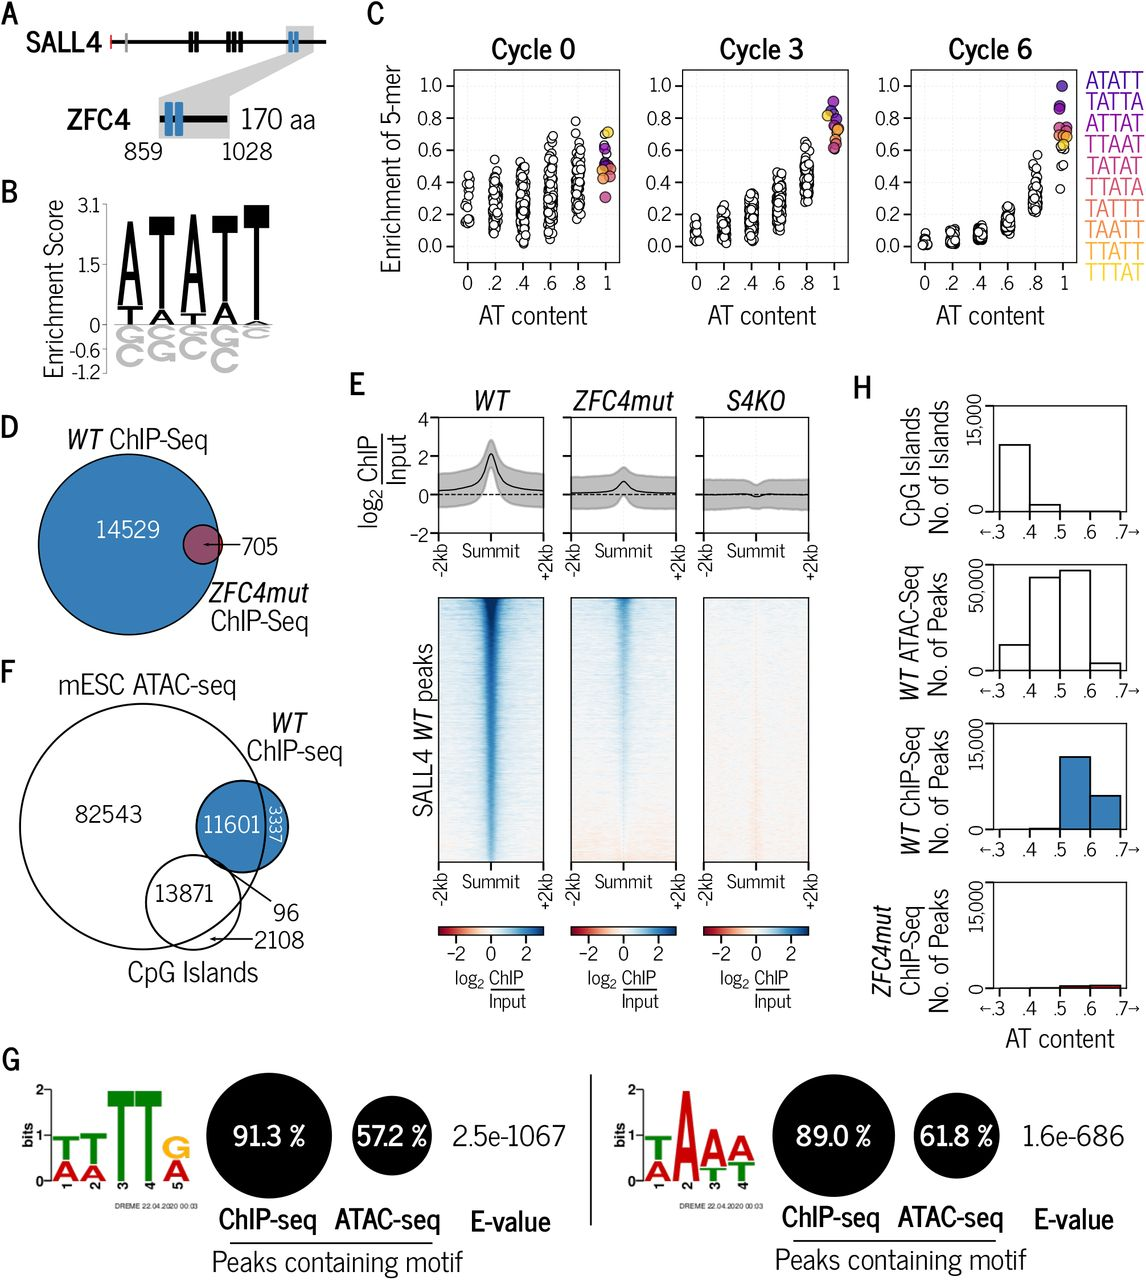 Characterisation of SALL4 C2H2 zinc-finger cluster 4 (ZFC4) DNA binding in vitro and in vivo A. SALL4 ZFC4 protein fragment used for in vitro HT-SELEX experiments. B. Preferred 5-mer motif identified after 6 cycles of HT-SELEX with SALL4 ZFC4. C. Relative enrichment of 5-mer motifs categorised by AT-content at cycle 0, 3 and 6 of HT-SELEX with SALL4 ZFC4. Coloured circles are the most enriched motifs at cycle 6 of HT-SELEX. D. Venn diagram showing the overlap of SALL4 ChIP-seq peaks between WT and ZFC4mut ESCs. E. Profile plot and heatmap showing SALL4 ChIP-seq signal at SALL4 WT ChIP-seq peaks in the indicated cell lines. F. Venn diagram showing the overlap of SALL4 ChIP-seq peaks detected in WT ESCs with ATAC-seq peaks (accessible chromatin) and CpG islands. G. Results from de novo motif analysis at SALL4 WT ChIP-seq peaks (summit +/- 250bp) showing the relative frequency of each DNA motif and its associated E-value. ATAC-seq peaks were used as a control for regions of accessible chromatin. H. Analysis of the DNA base composition surrounding SALL4 ChIP-seq peaks (summit +/- 250bp) in WT (blue) and ZFC4mut (red) ESCs. CpG islands and ATAC-seq peaks coincide with regions of accessible chromatin and are shown for comparison.